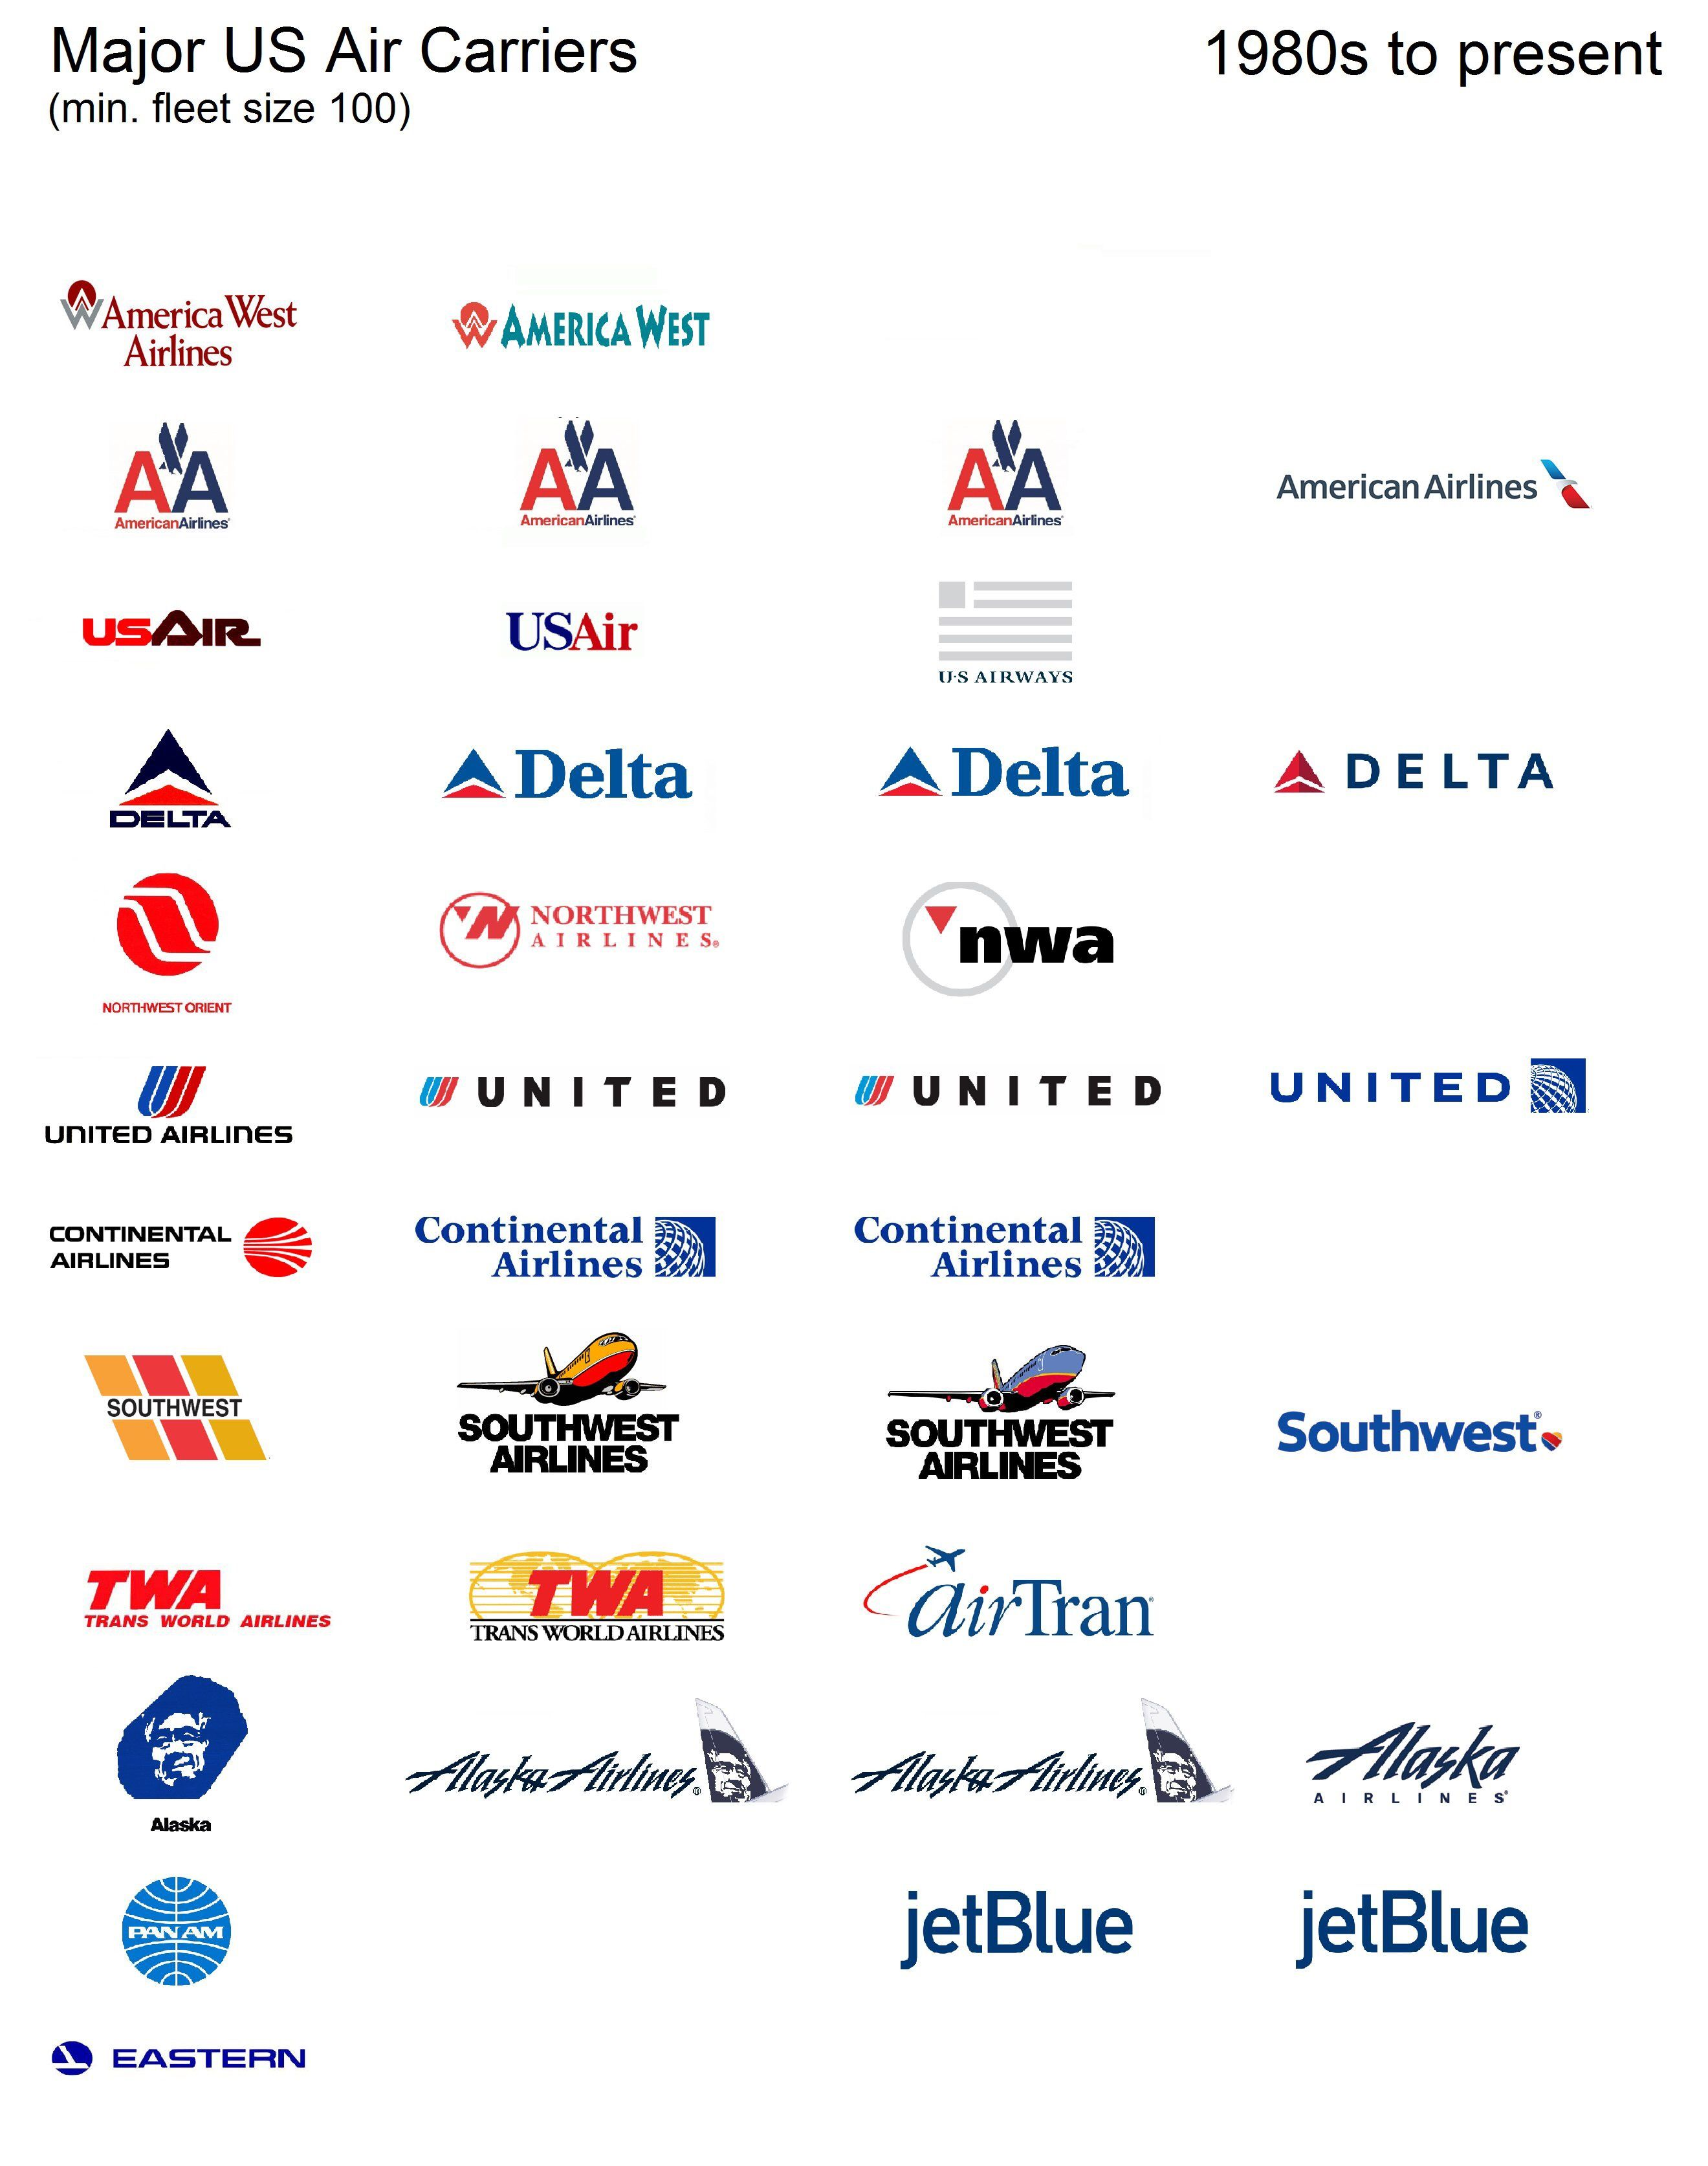 Logo consolidation of major US carriers from 1980s to